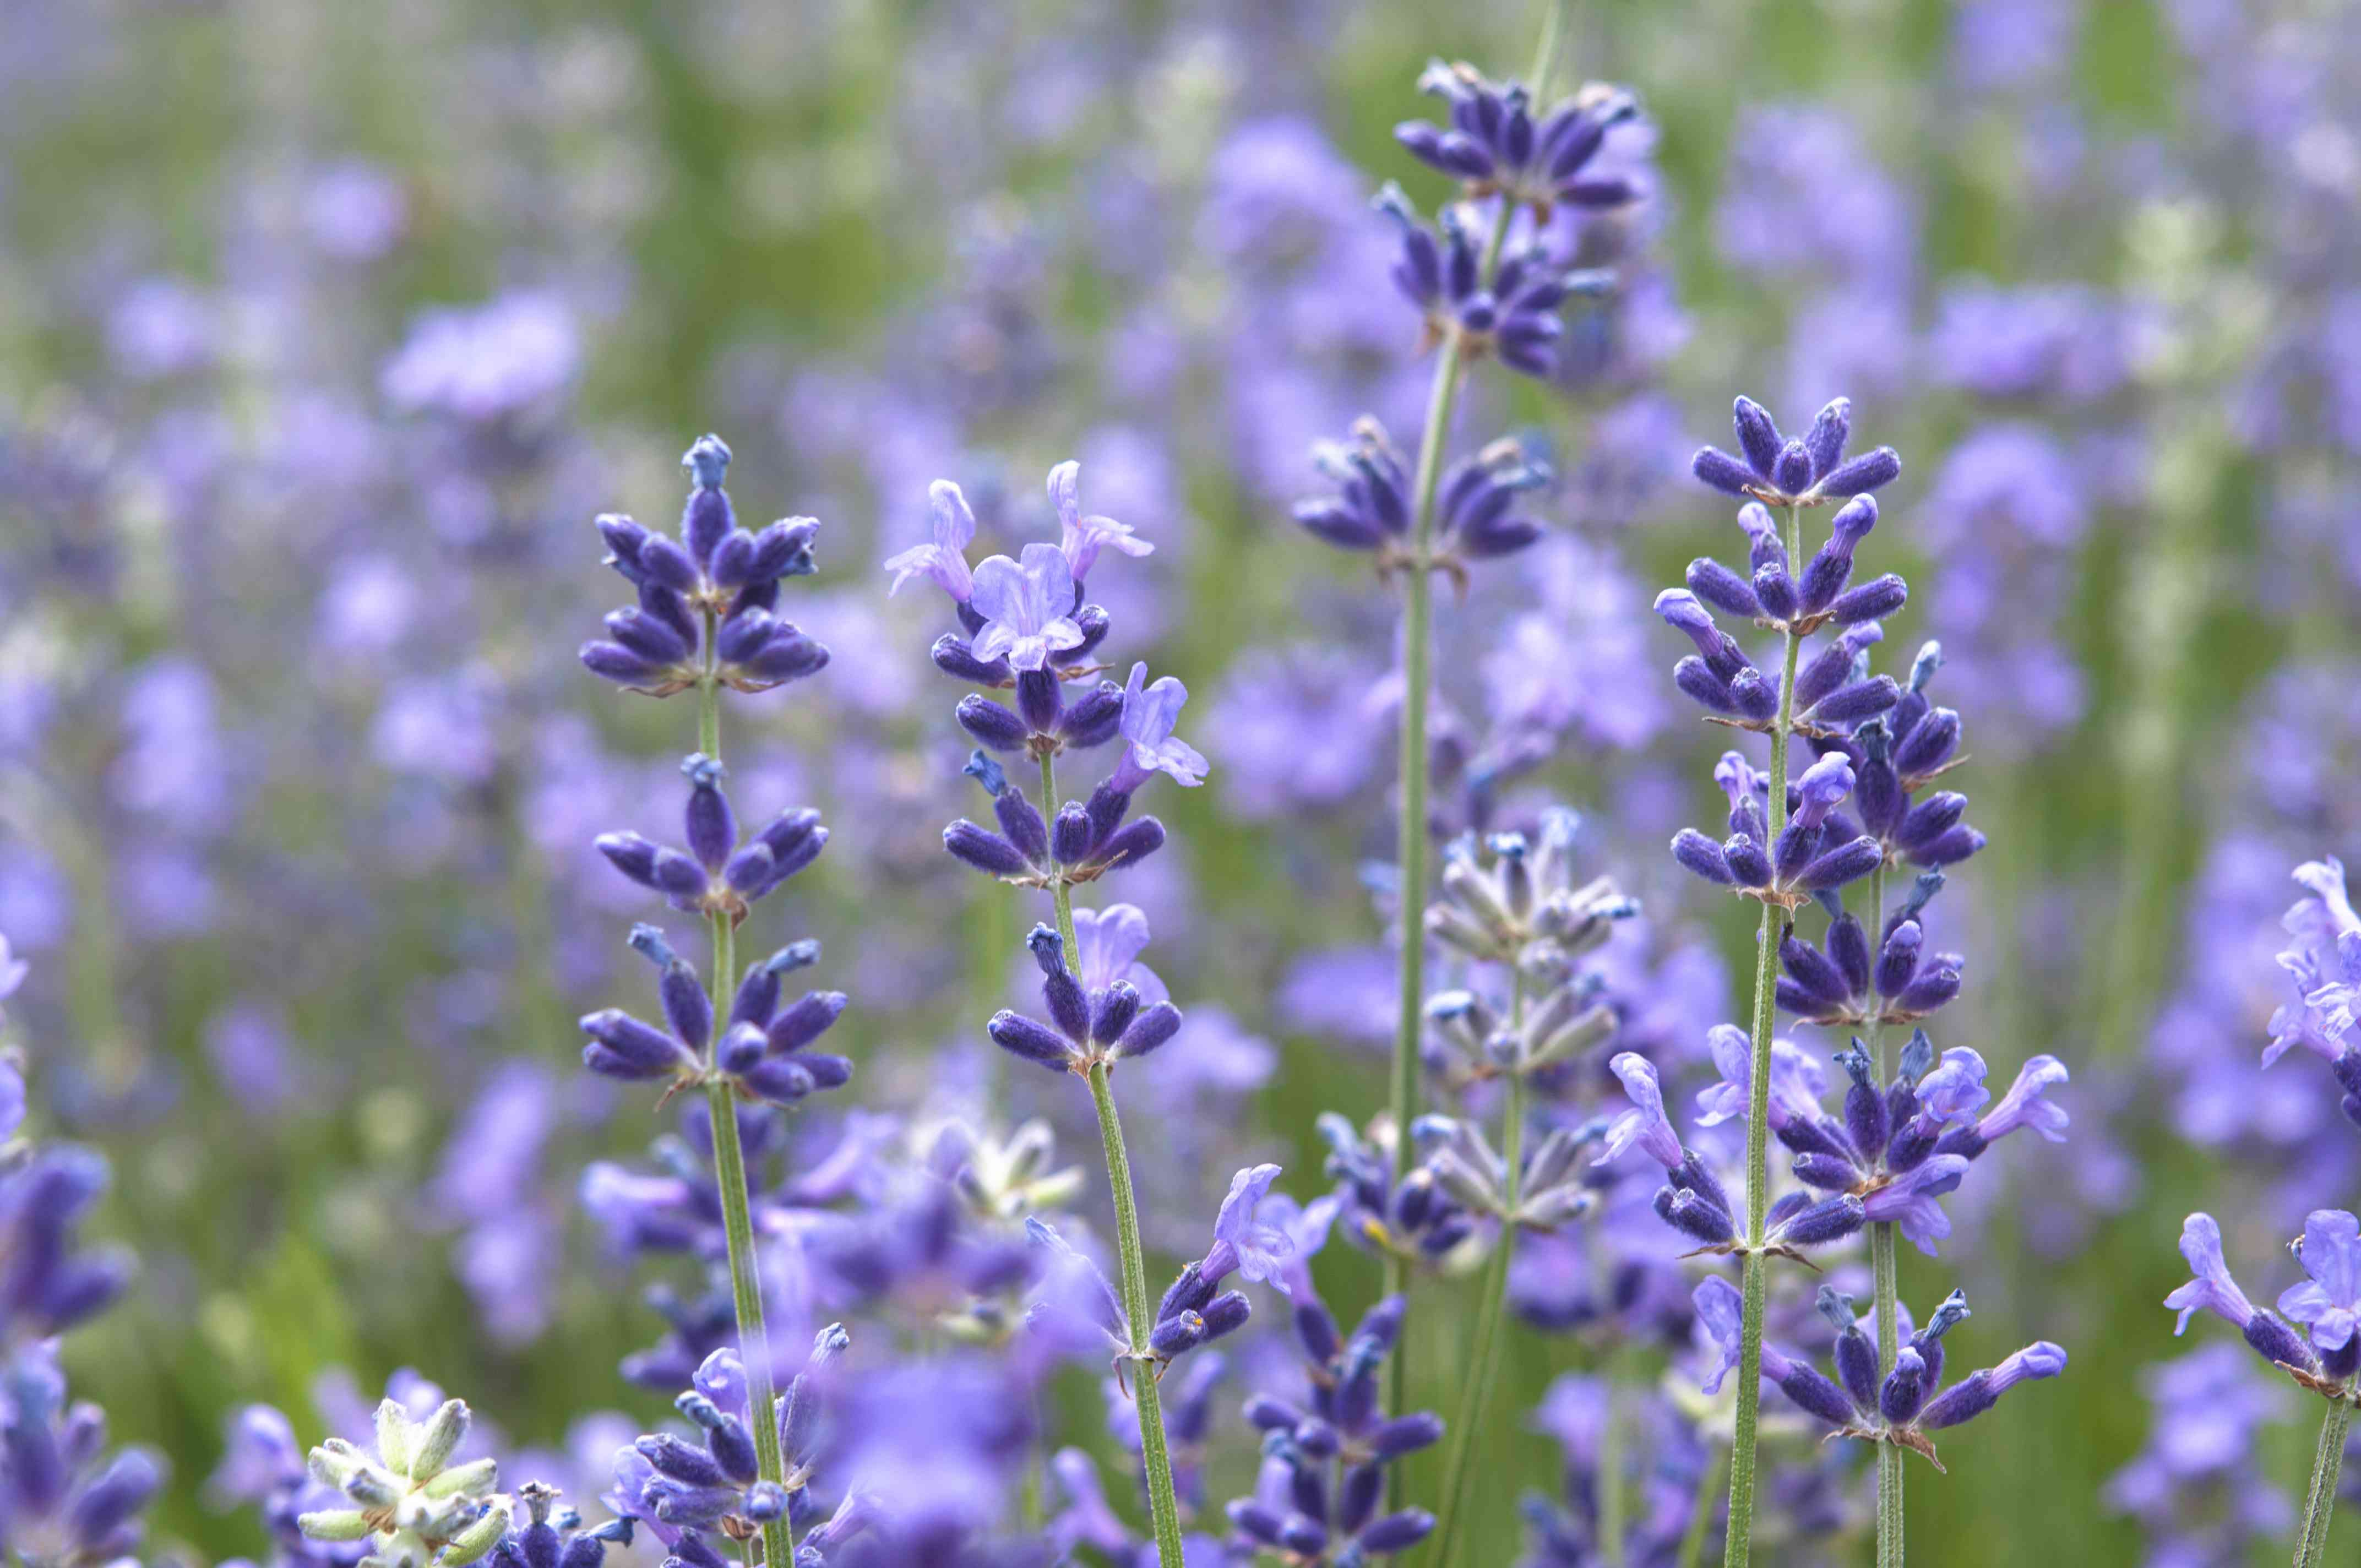 Munstead lavender plant with small purple blooms on thin stems closeup